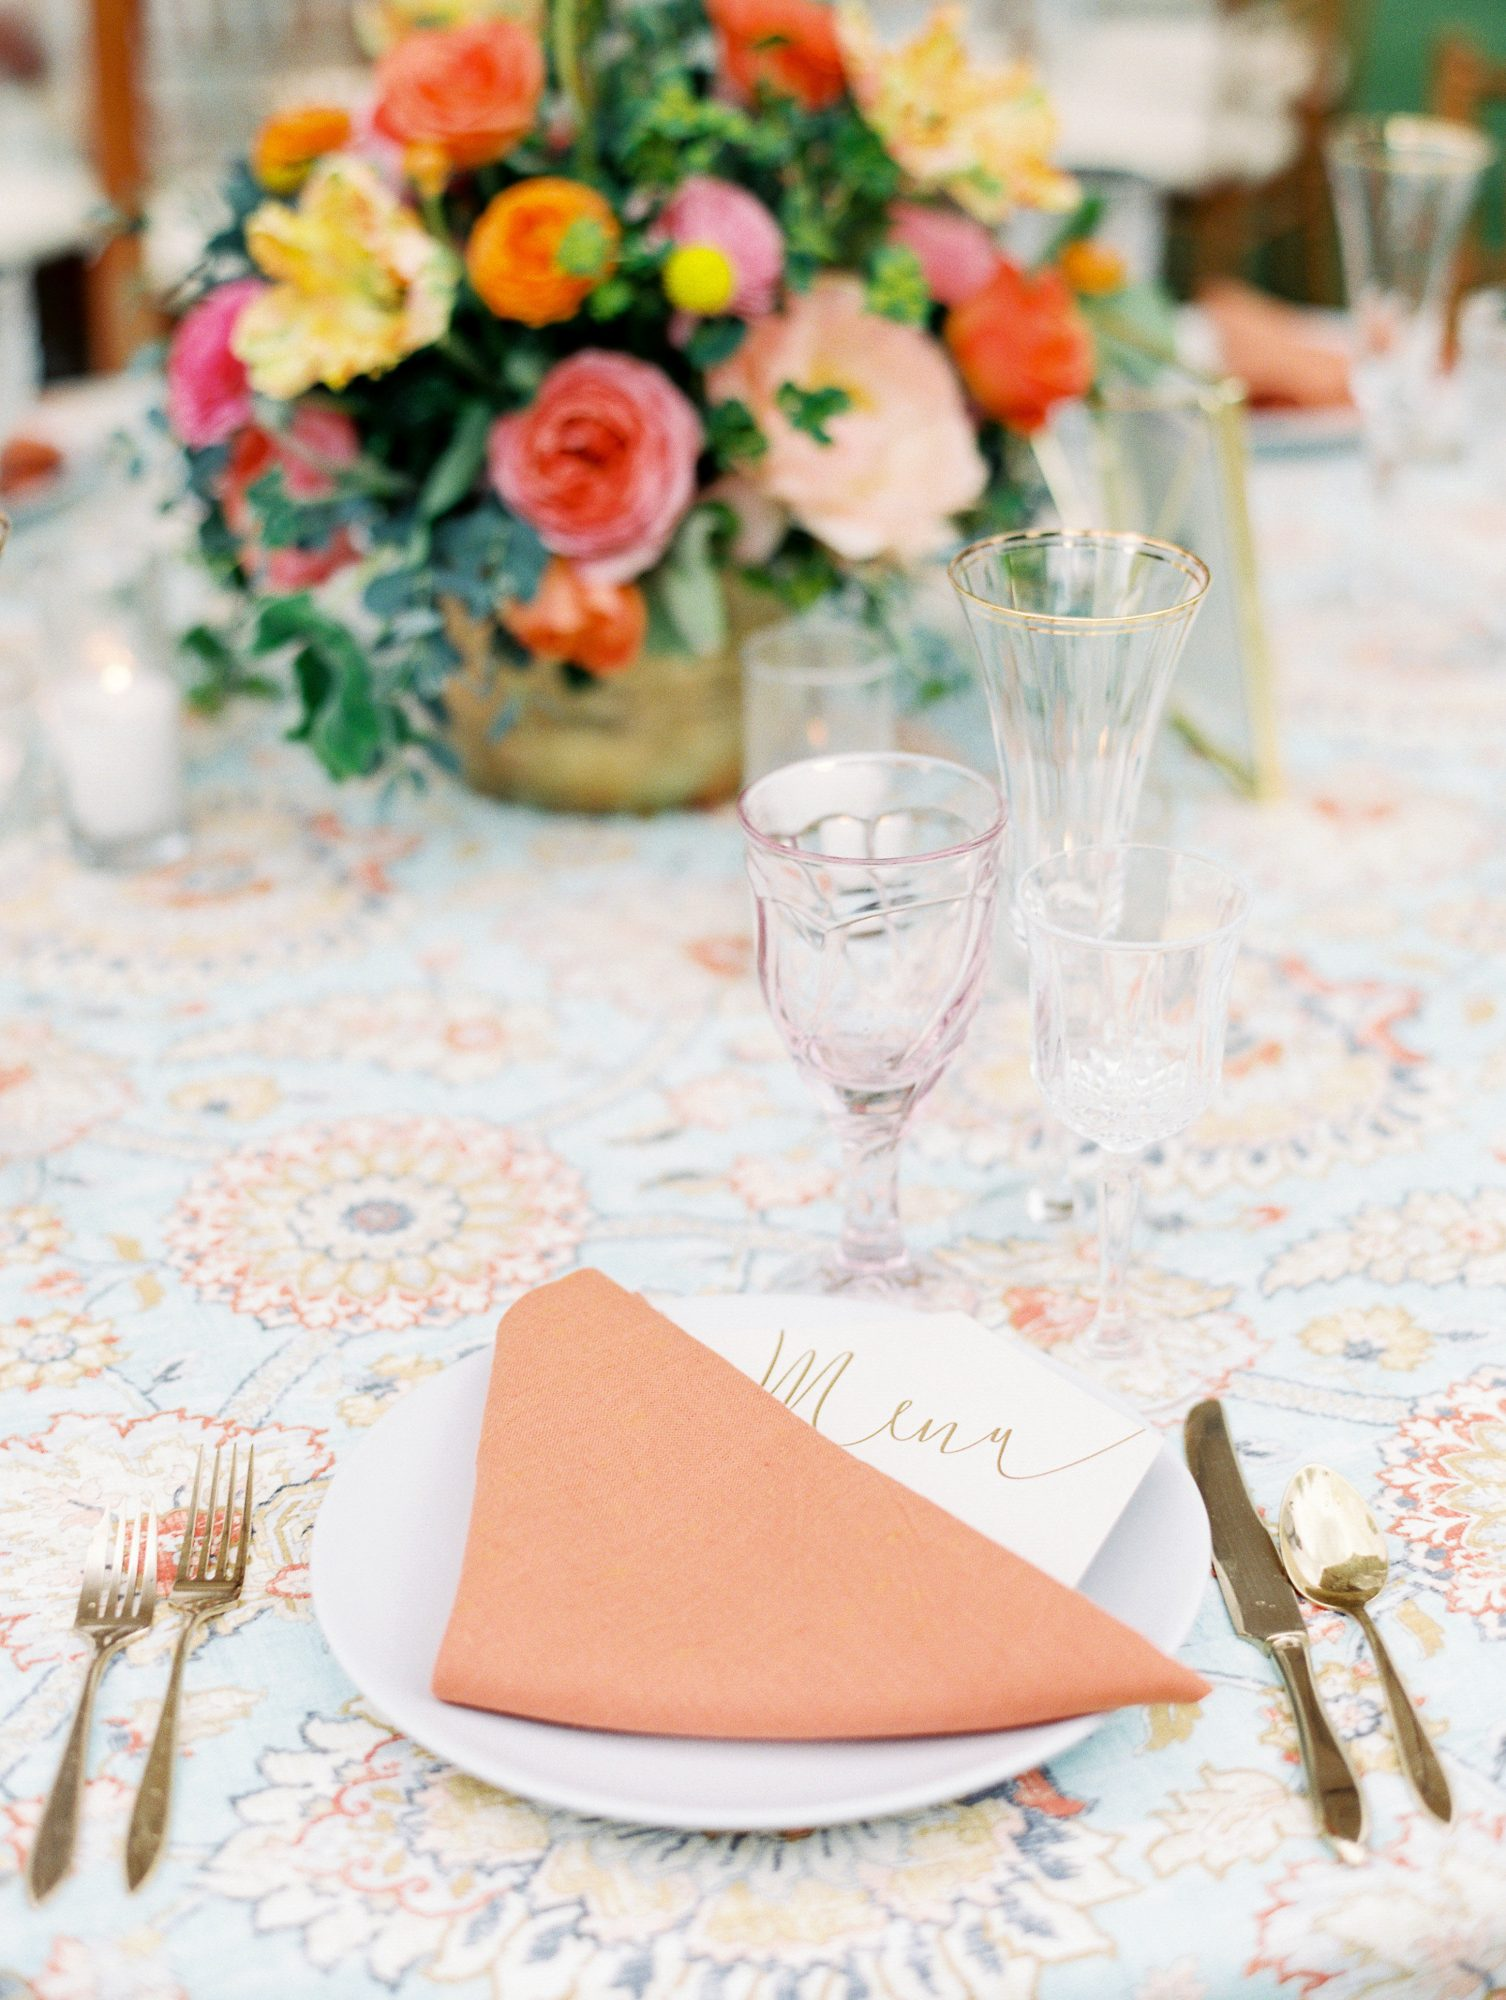 aubrey austin wedding place setting